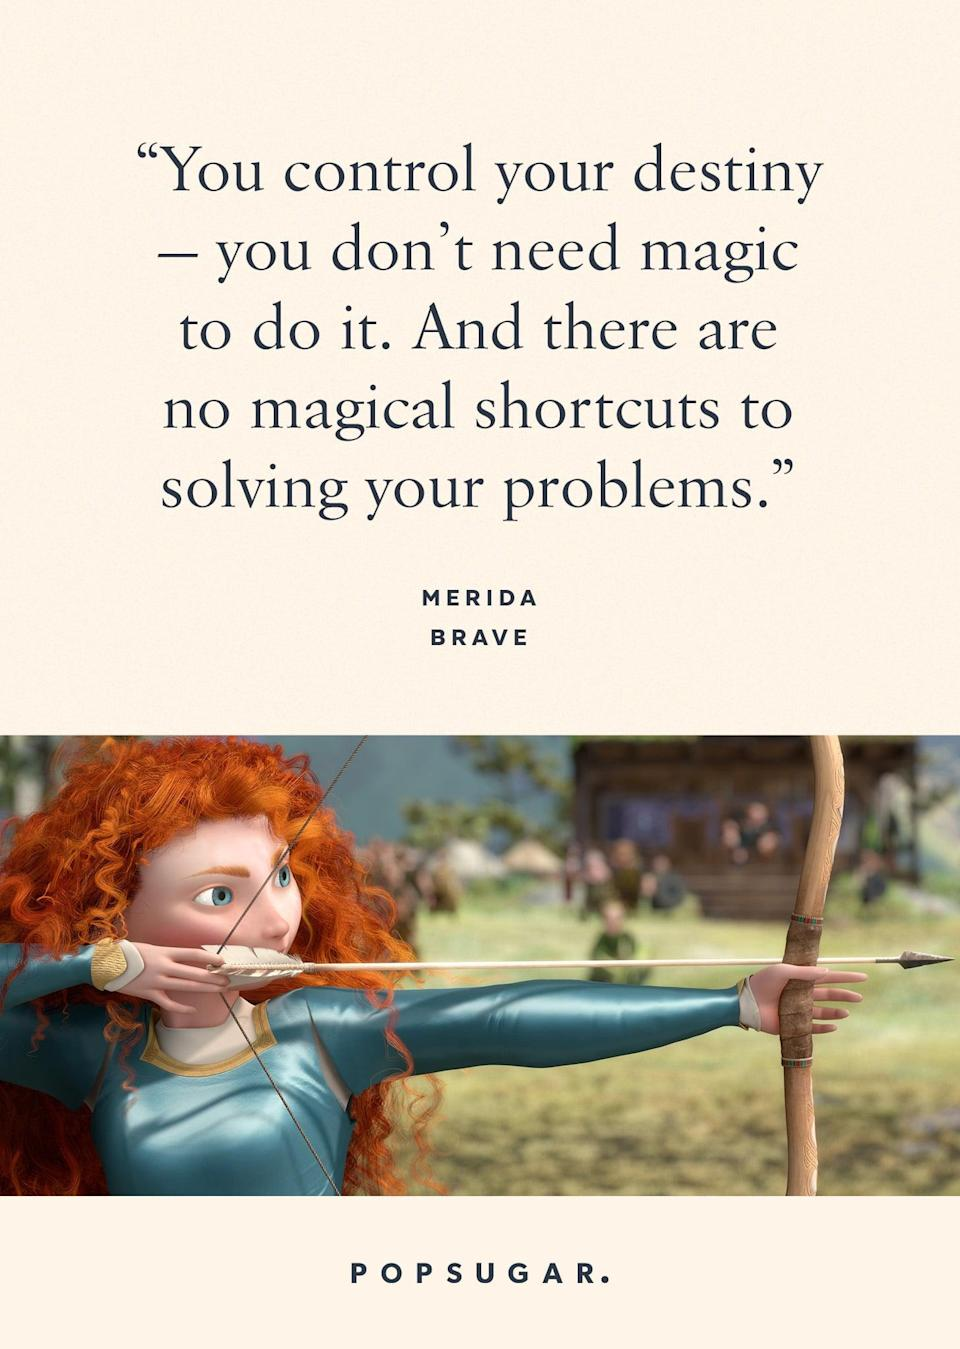 "<p>""You control your destiny - you don't need magic to do it. And there are no magical shortcuts to solving your problems."" - Merida, <b>Brave</b></p>"